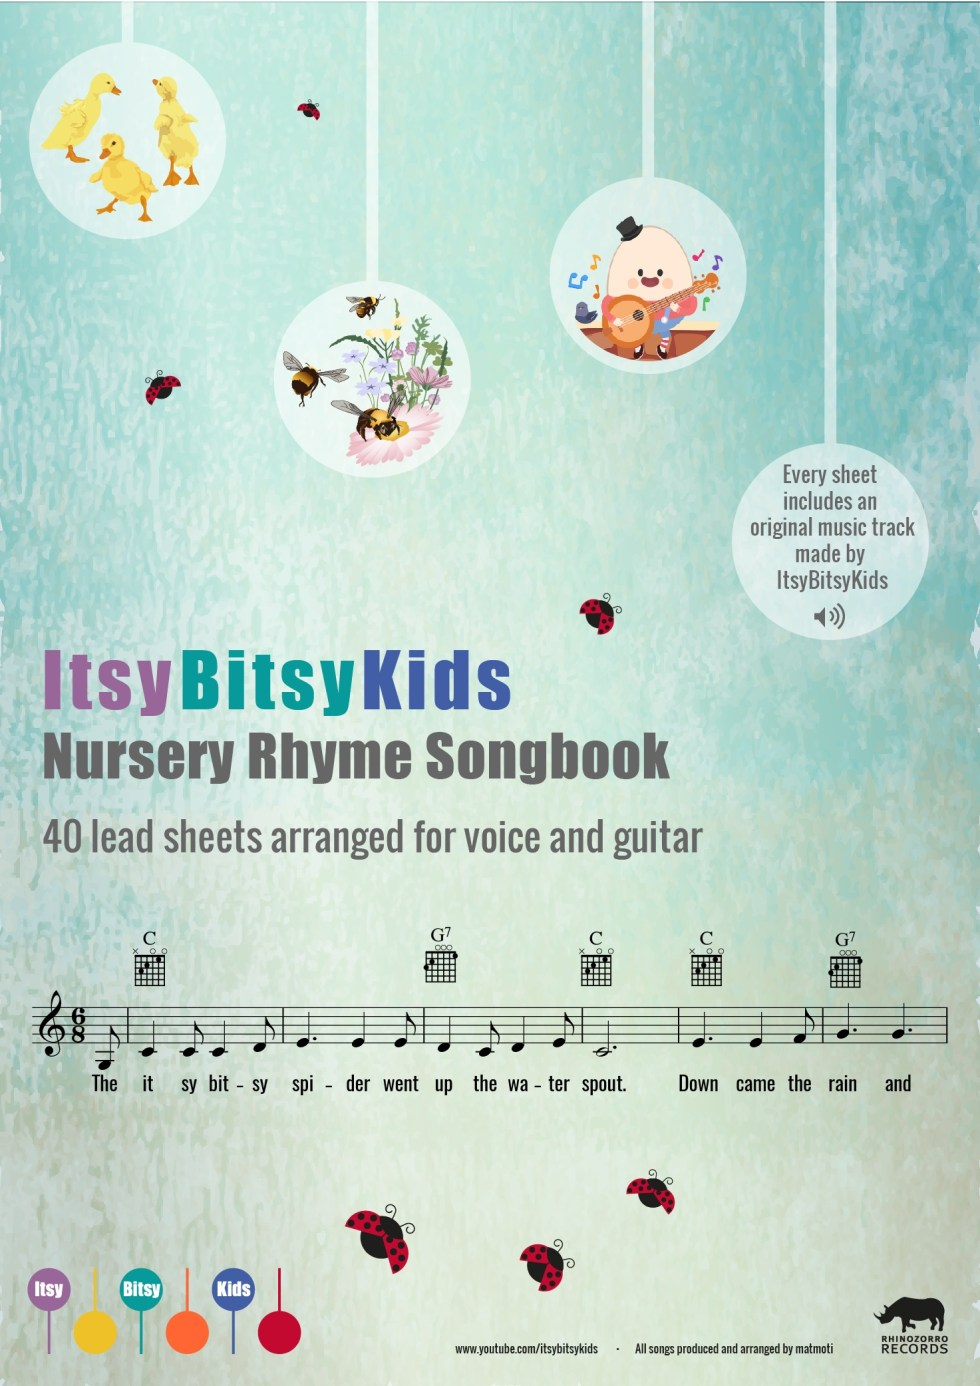 The ItsyBitsyKids Nursery Rhyme Songbook Sheets For Voice and Guitar